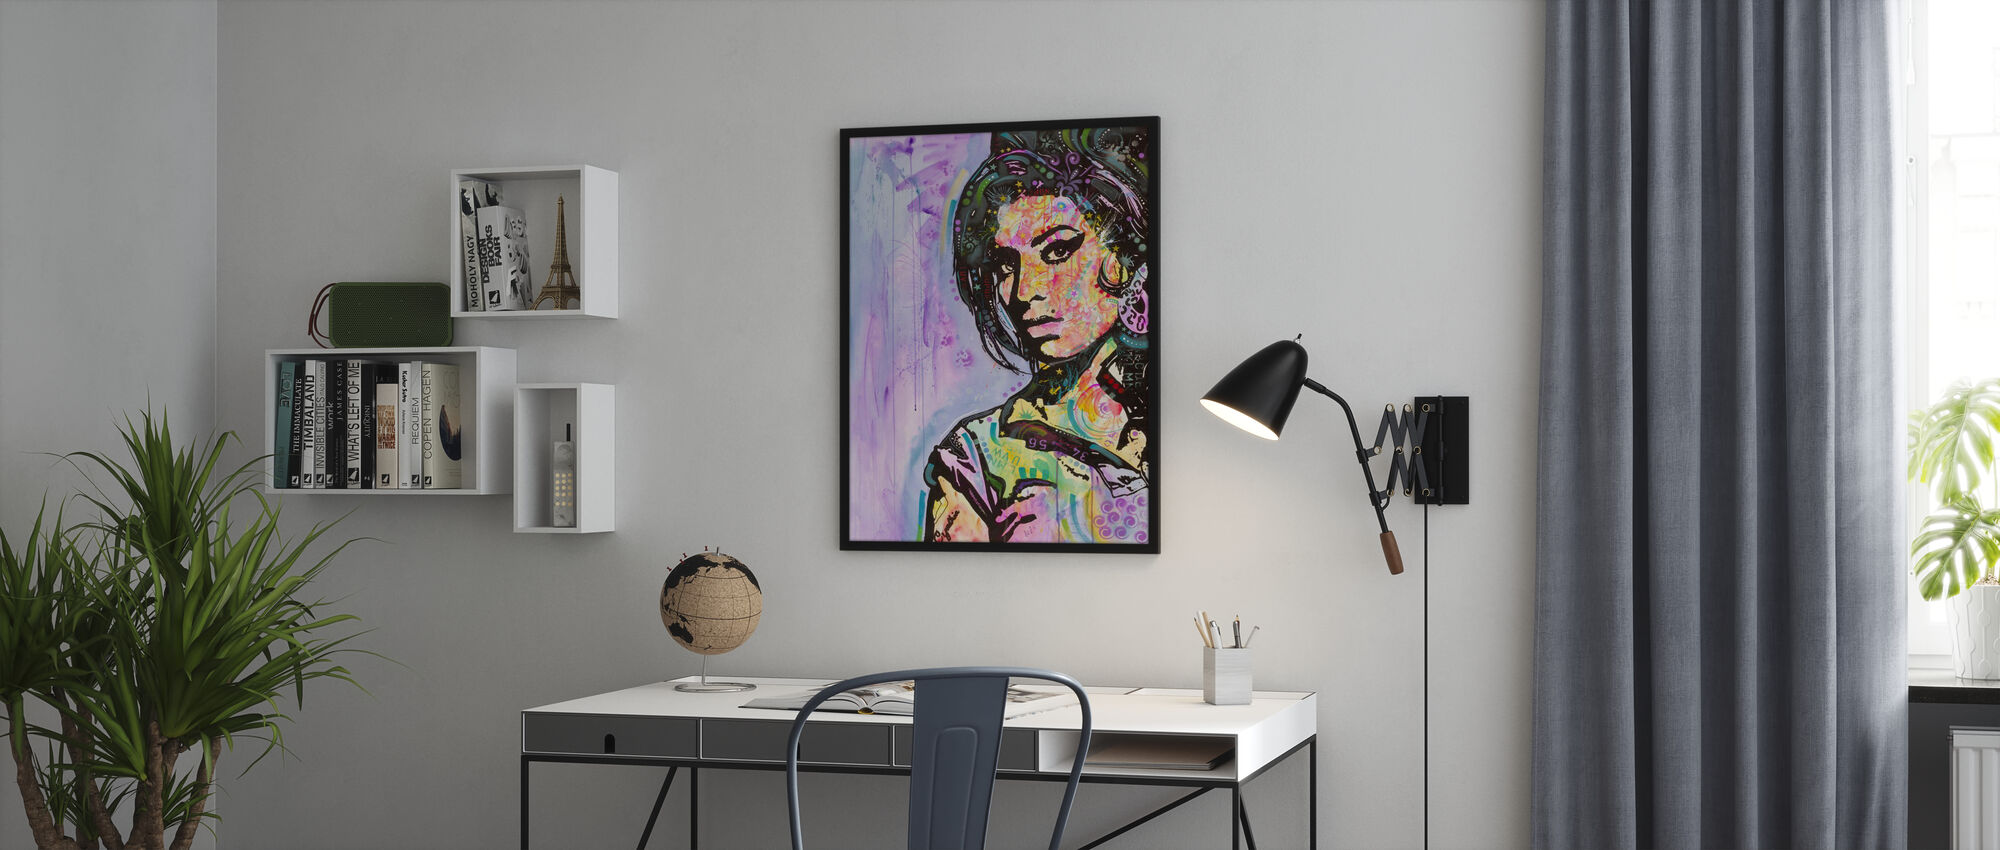 Amy - Framed print - Office